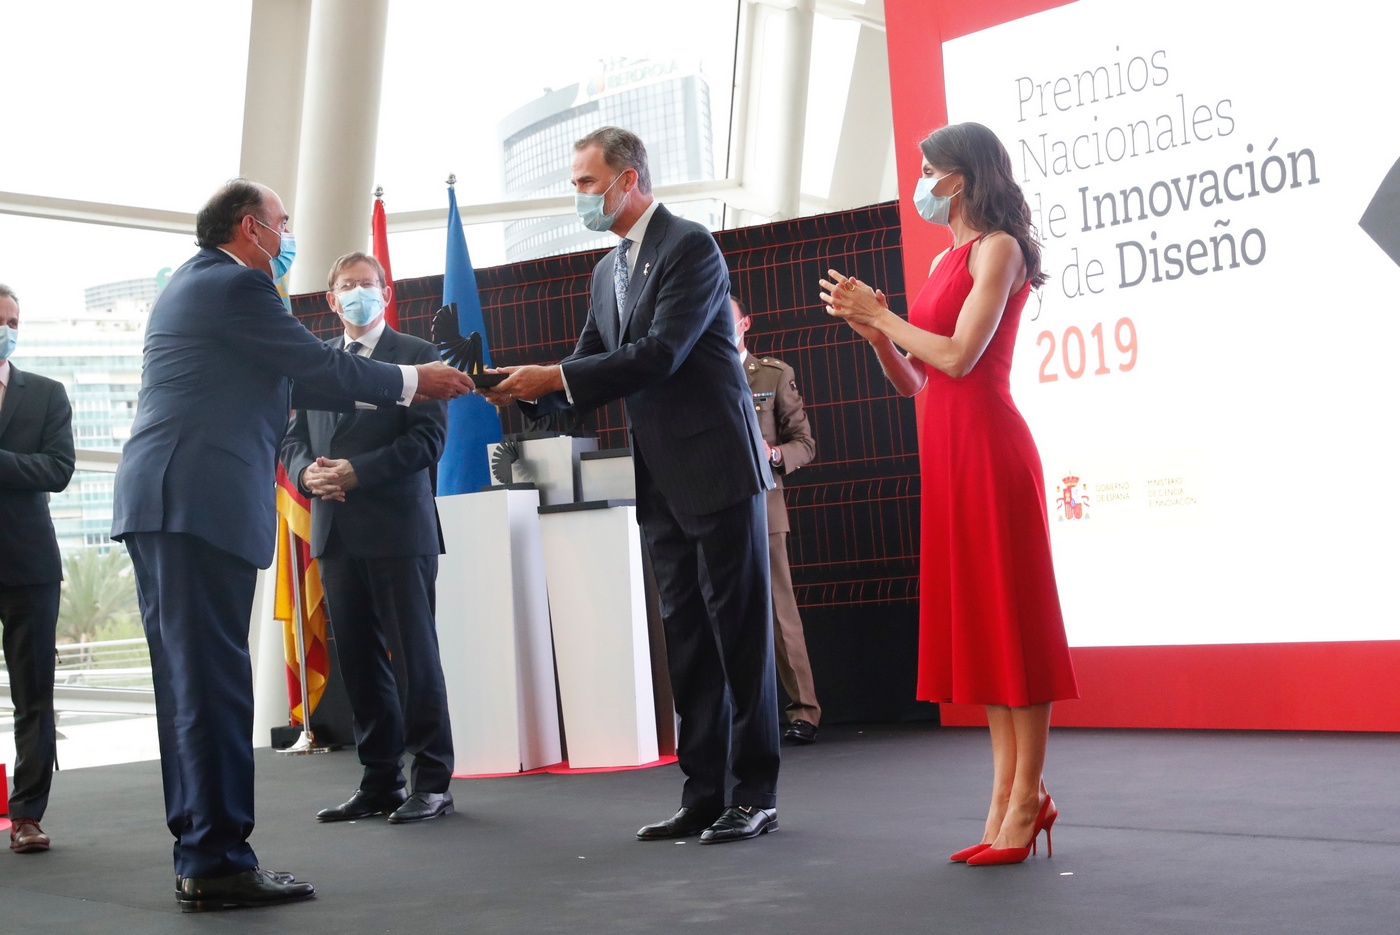 King Felipe and Queen Letizia of Spain presided over the delivery of the Innovation and Design Awards 2019